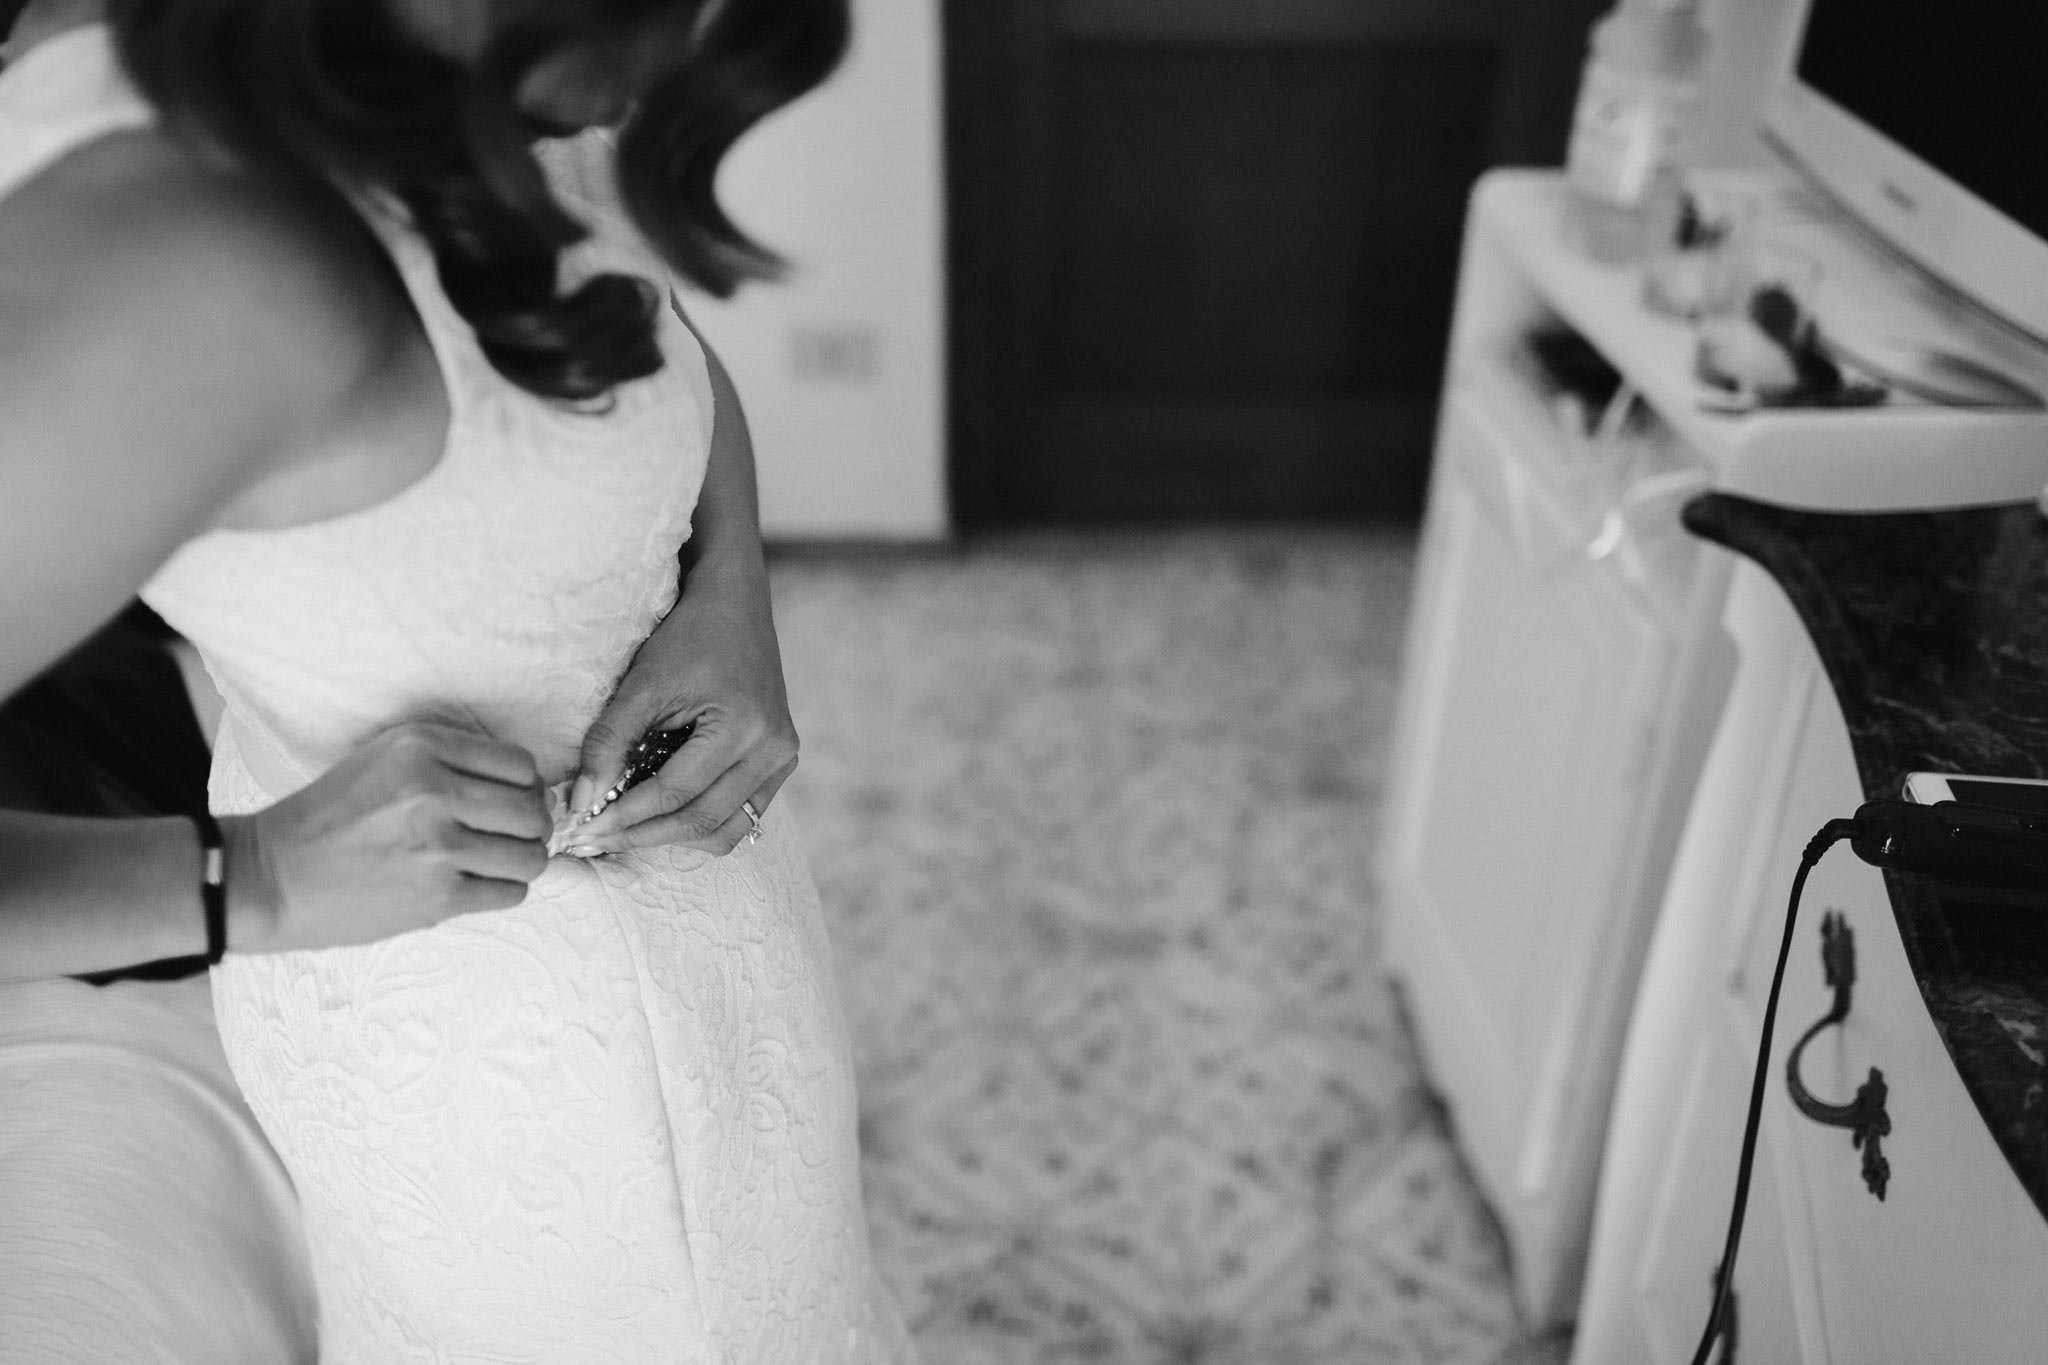 positano-wedding-photographer-022